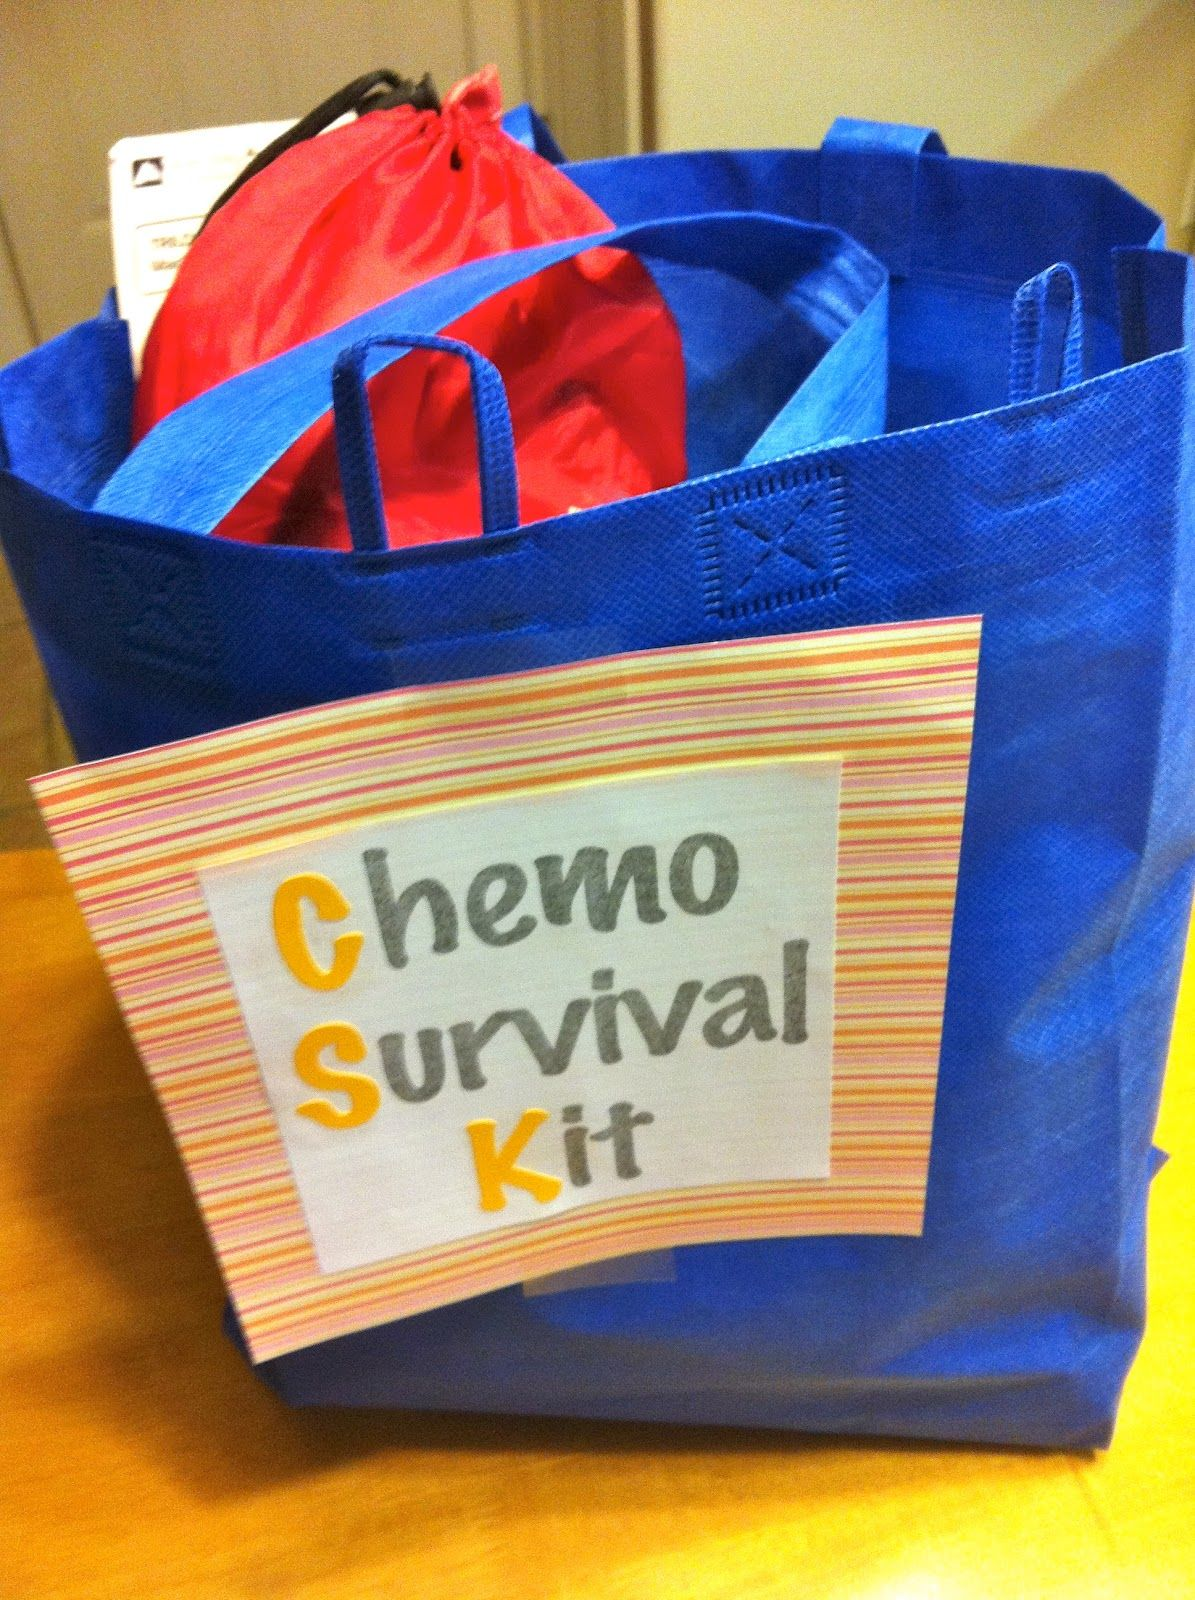 Chemo Survival Kit - what a great idea to help someone going through Chemo  - don't agree with everything suggested but easily changed for other items  ...